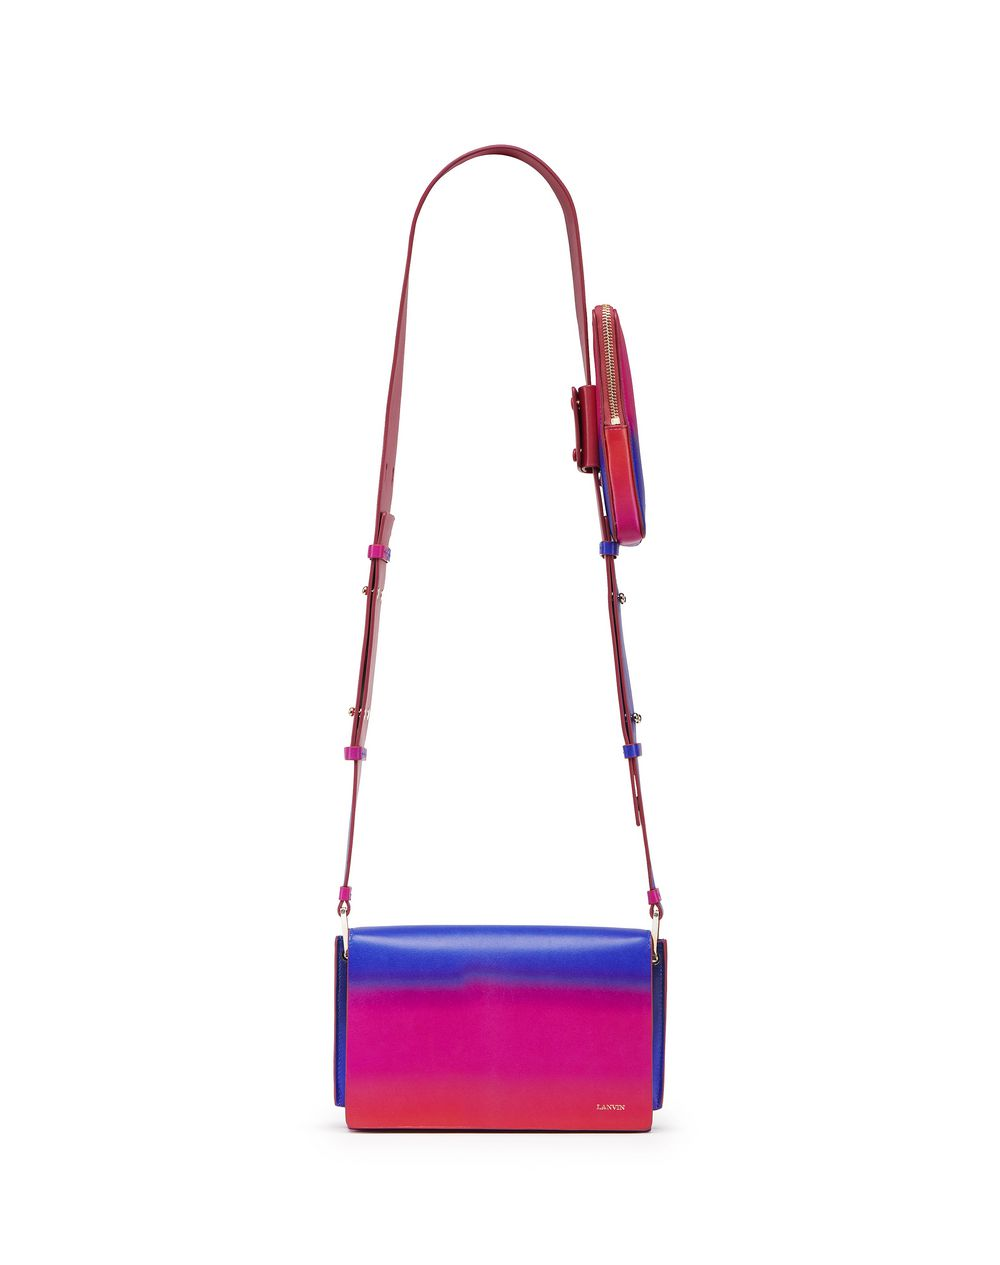 KRISTA KIM PRINT PIXEL-IT BAG - Lanvin